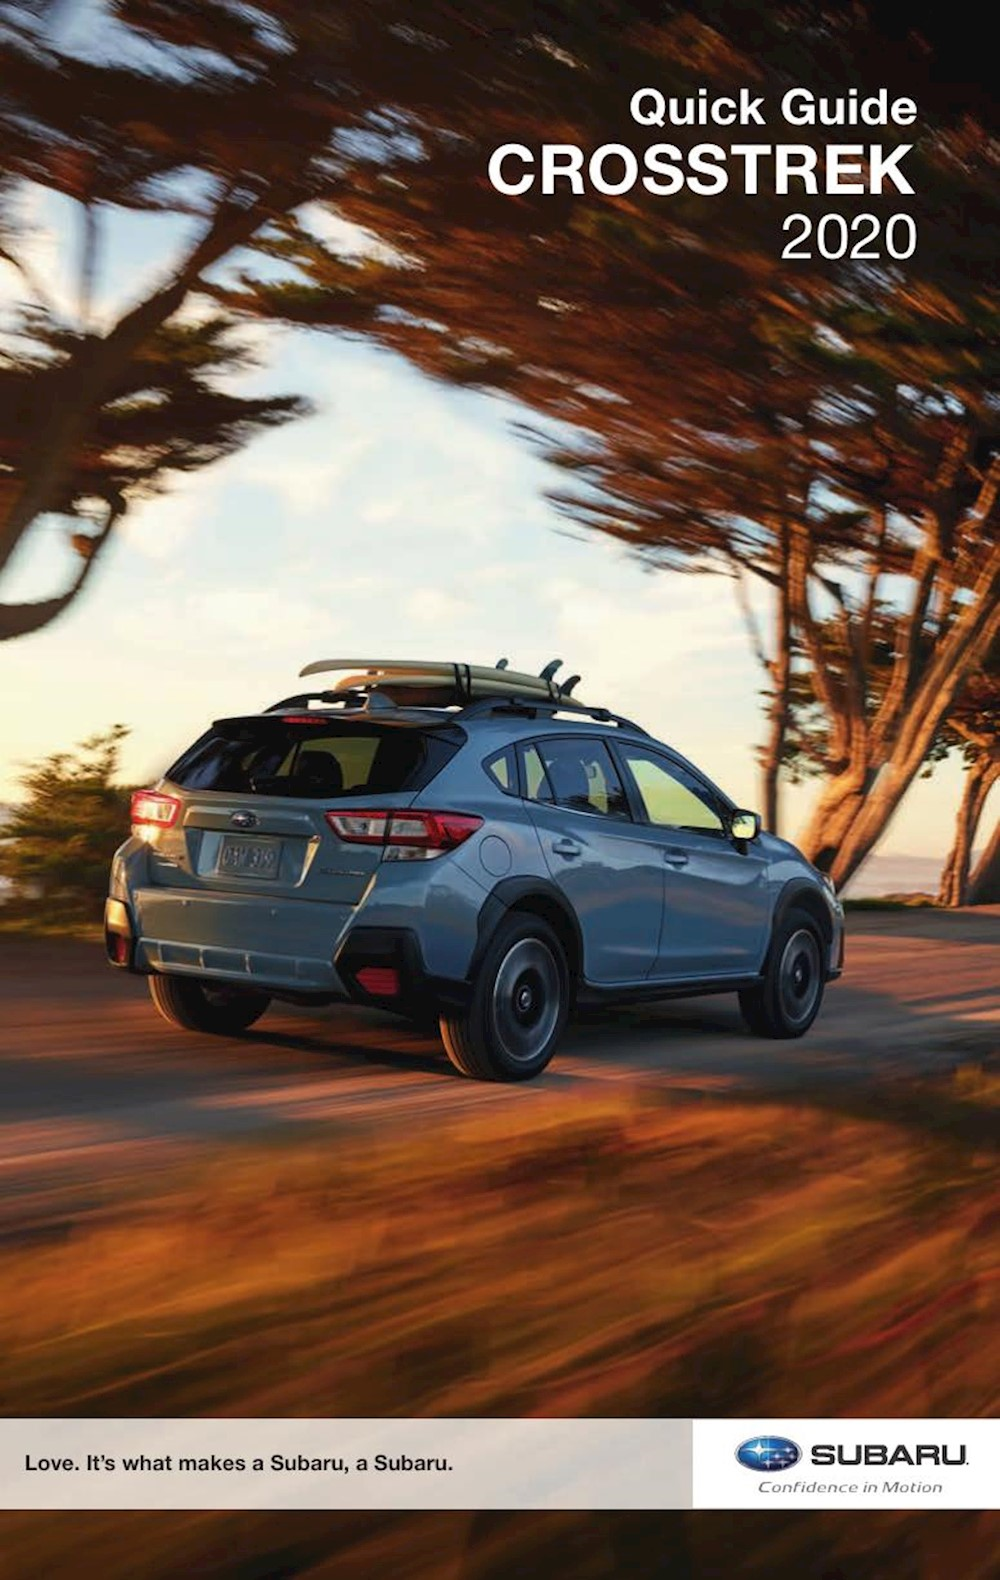 Subaru Crosstrek Quick Guide 2020 EN